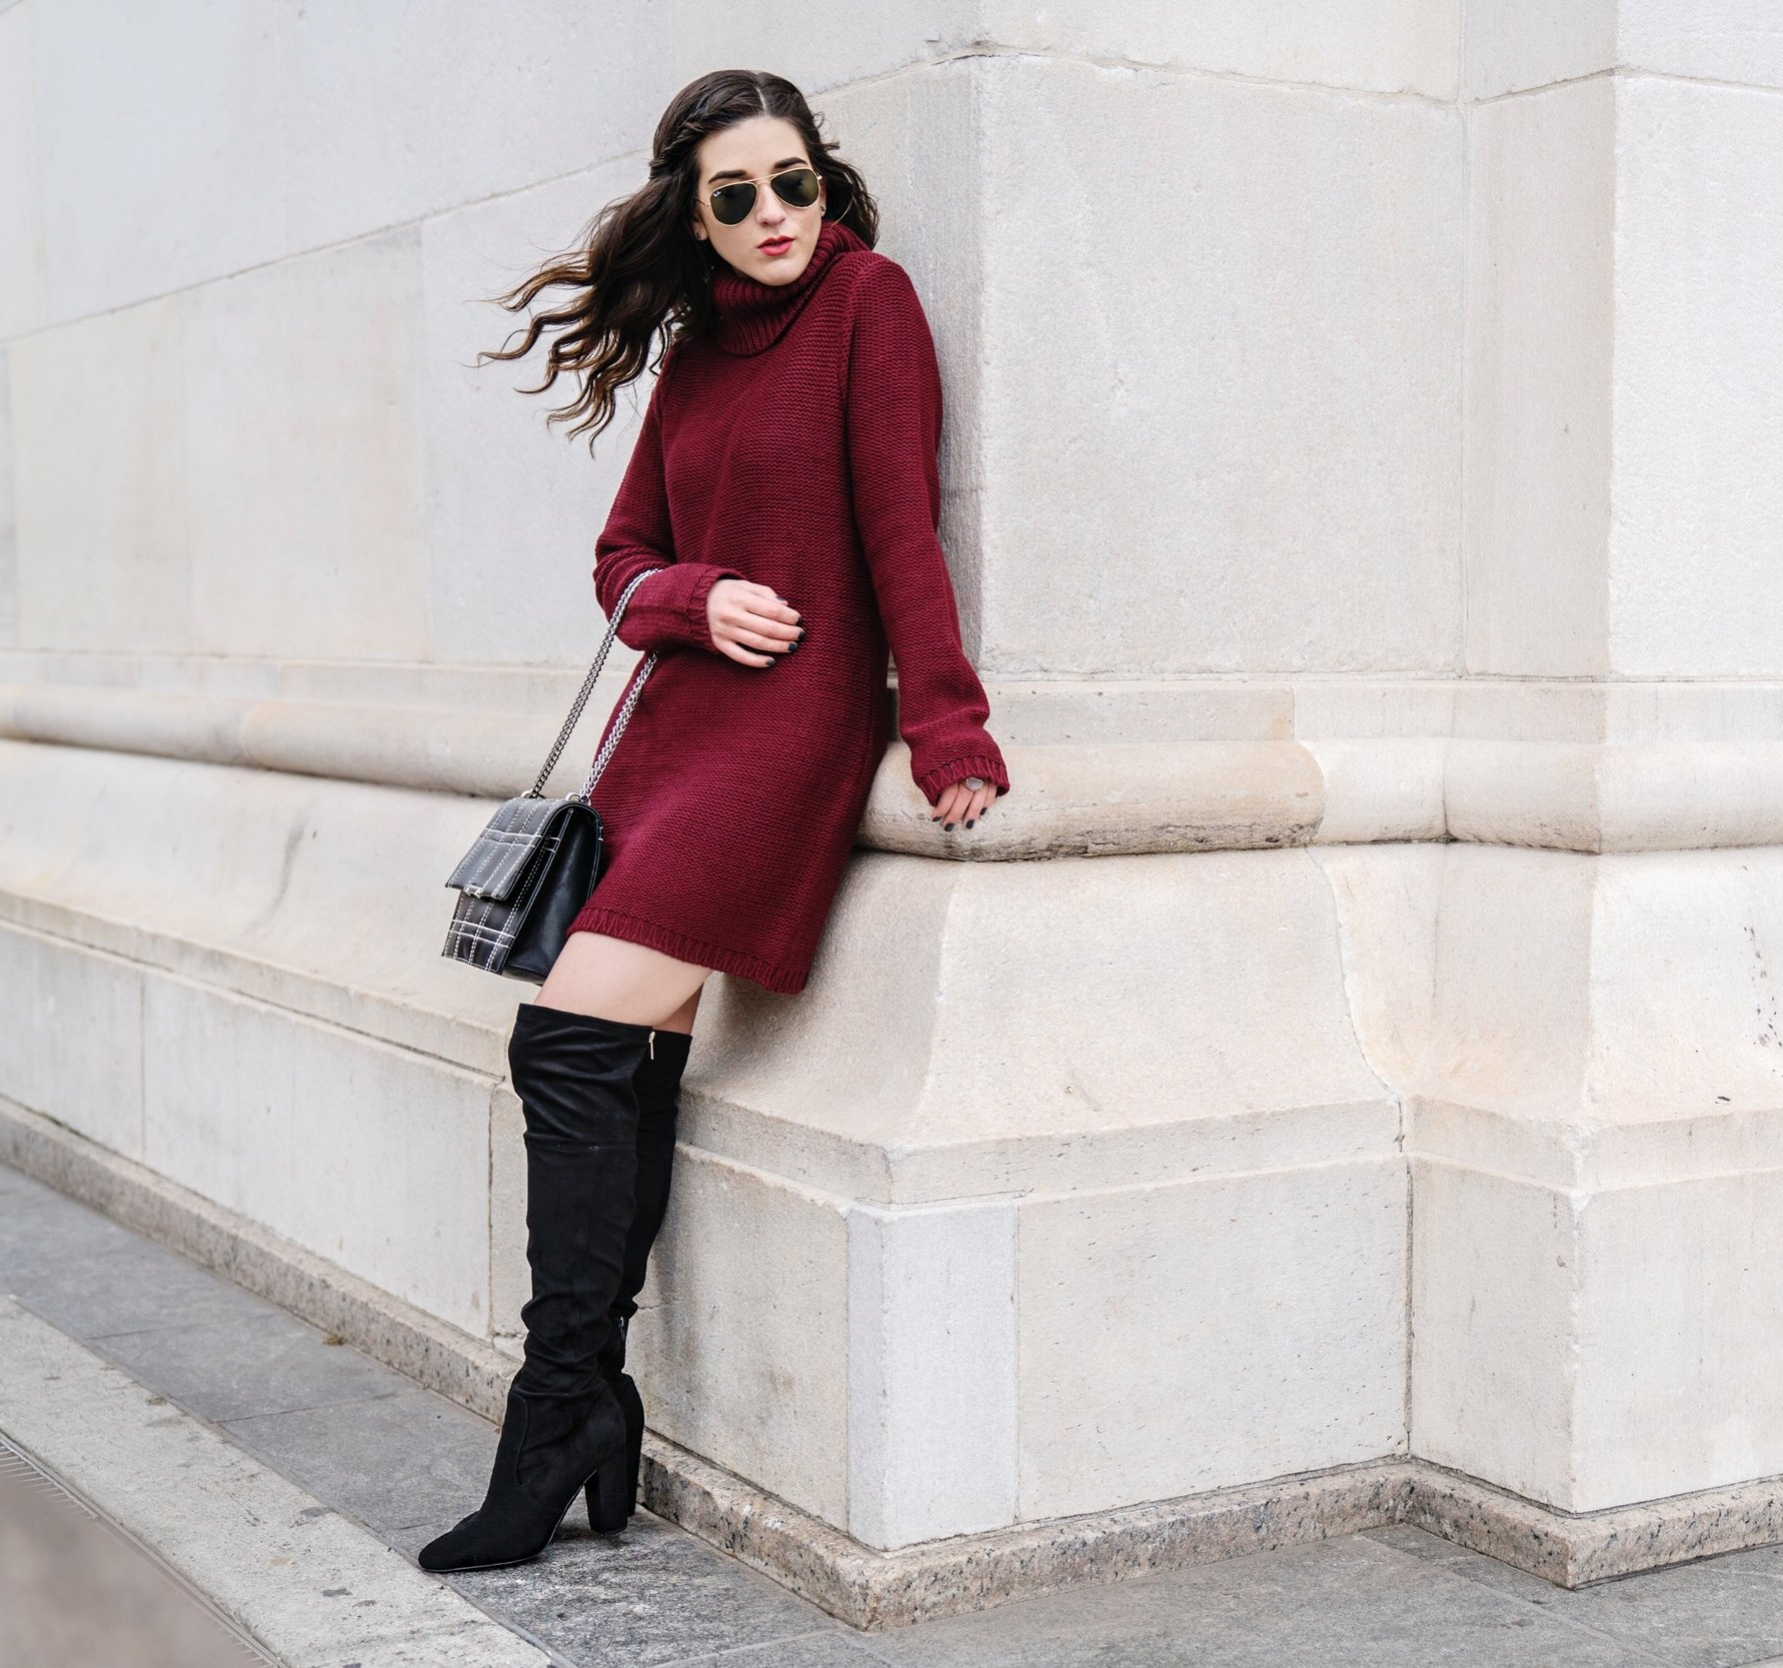 Maroon Sweater Dress OTK Boots My Biggest Blogging Mistake Esther Santer Fashion Blog NYC Street Style Blogger Outfit OOTD Trendy Red Girl Women Sunglasses RayBan Aviators Shopping Wearing Zara Casual Bag Grid Purse Photoshoot New York City Hair Inspo.JPG